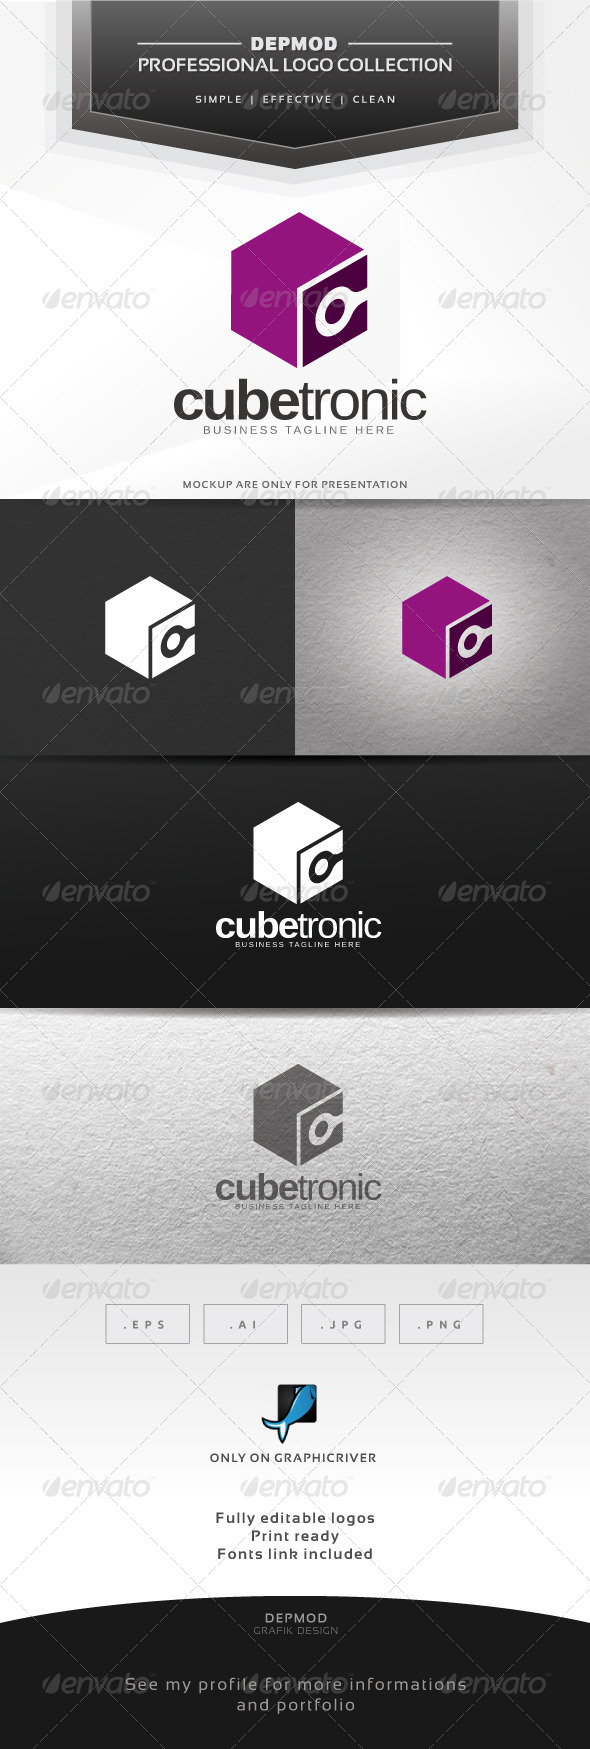 GraphicRiver Cube Tronic Logo 6315991